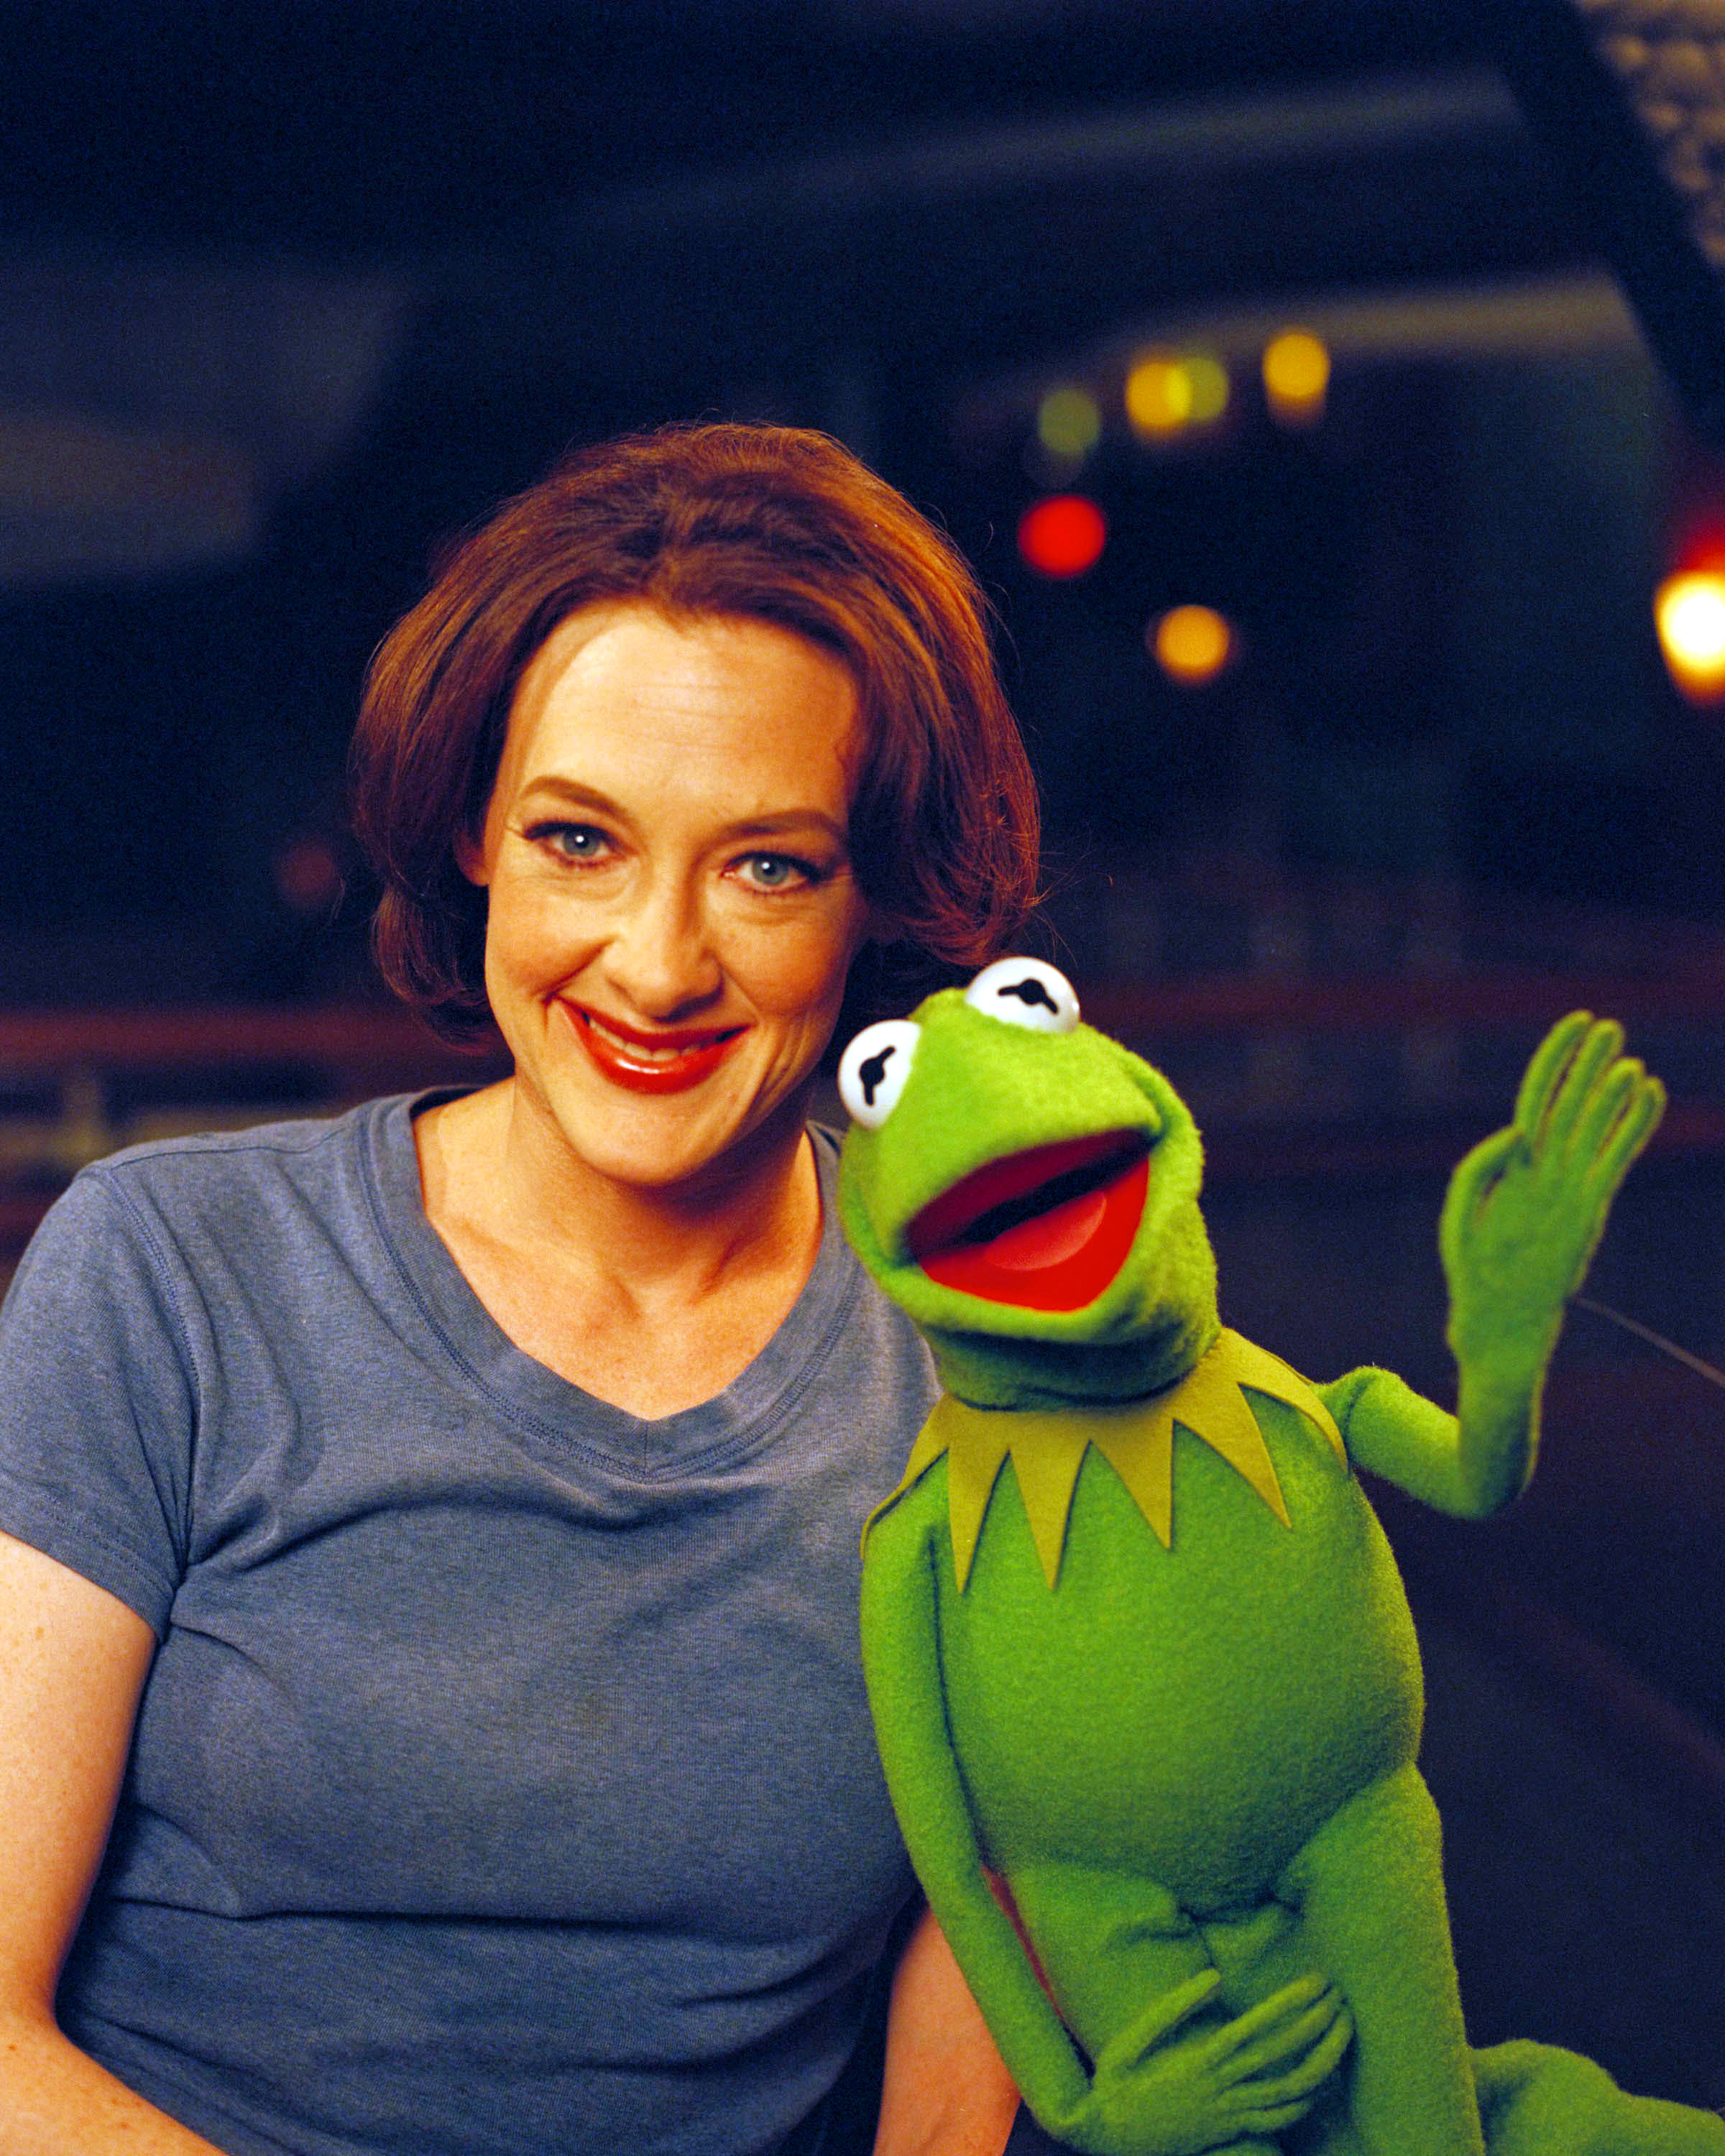 joan cusack twitterjoan cusack john, joan cusack tumblr, joan cusack alcoholic, joan cusack husband, joan cusack monologue, joan cusack twitter, joan cusack sixteen candles, joan cusack young, joan cusack interview, joan cusack 16 candles, joan cusack instagram, joan cusack youtube, joan cusack, joan cusack imdb, joan cusack wiki, joan cusack working girl, joan cusack school of rock, joan cusack emmy, say anything john cusack, joan cusack net worth